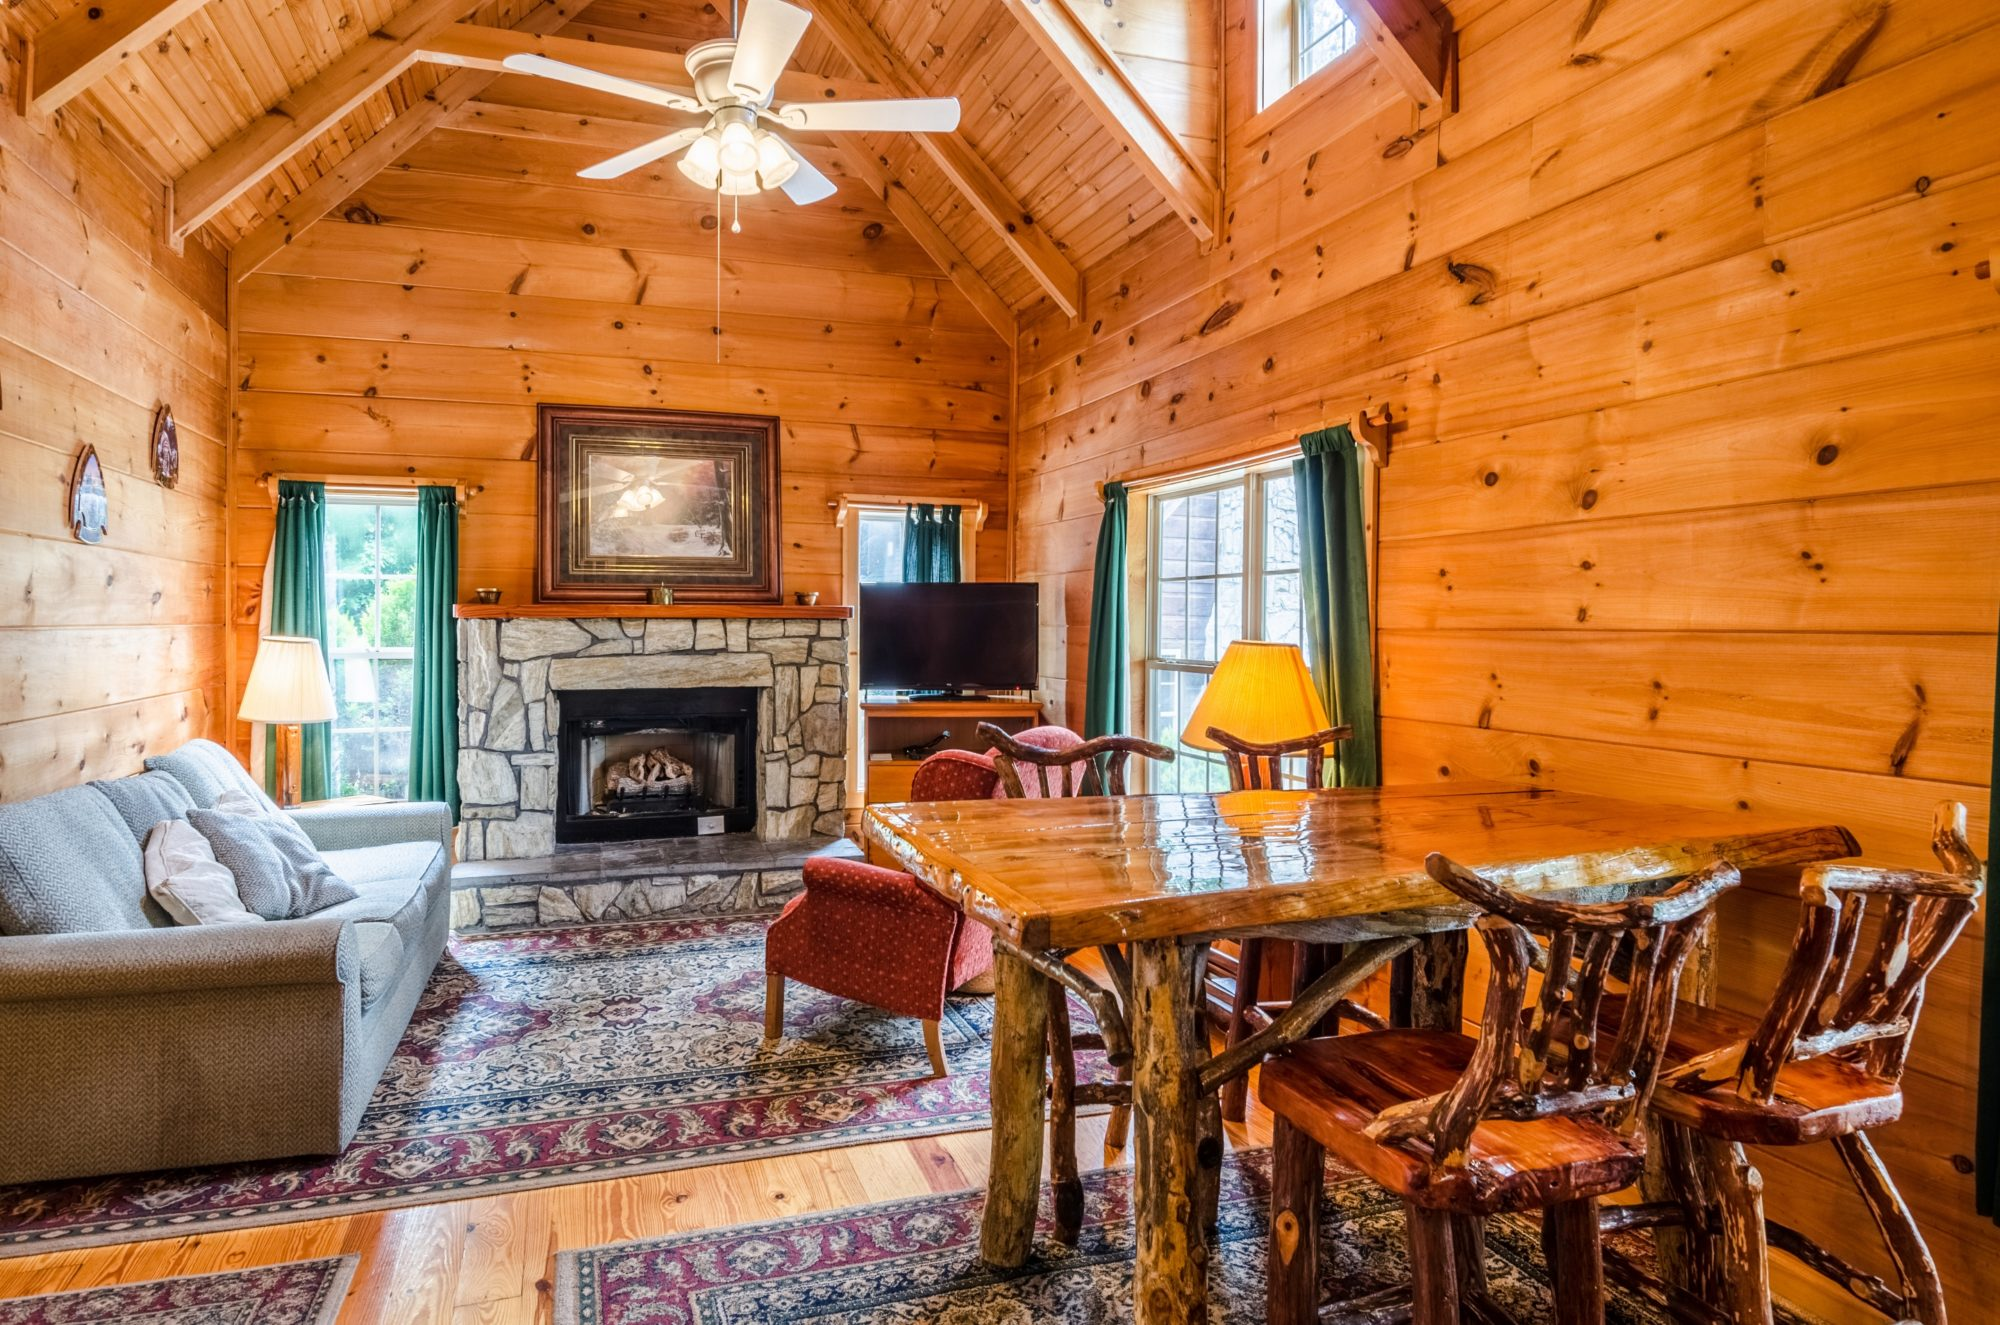 Wood panelled walls, sofa, side table with lam, fireplace with imitation logs, wall mounted art, corner unit with flat screen TV, rustic table and chairs, ceiling fan with light and wooden floors with large rugs